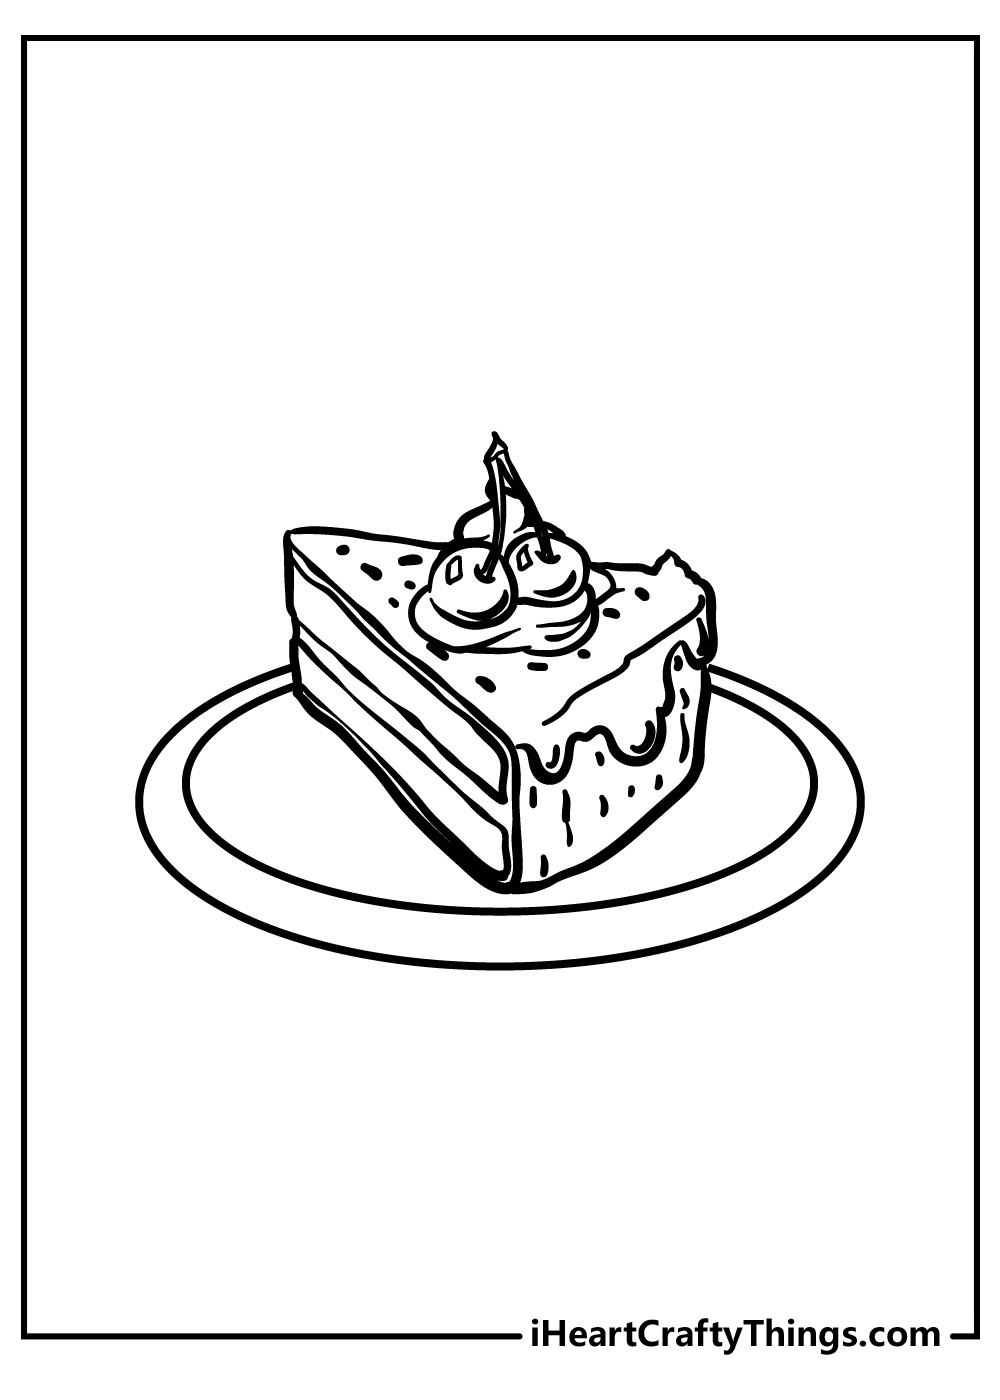 slice of cake coloring pages for kids free print out